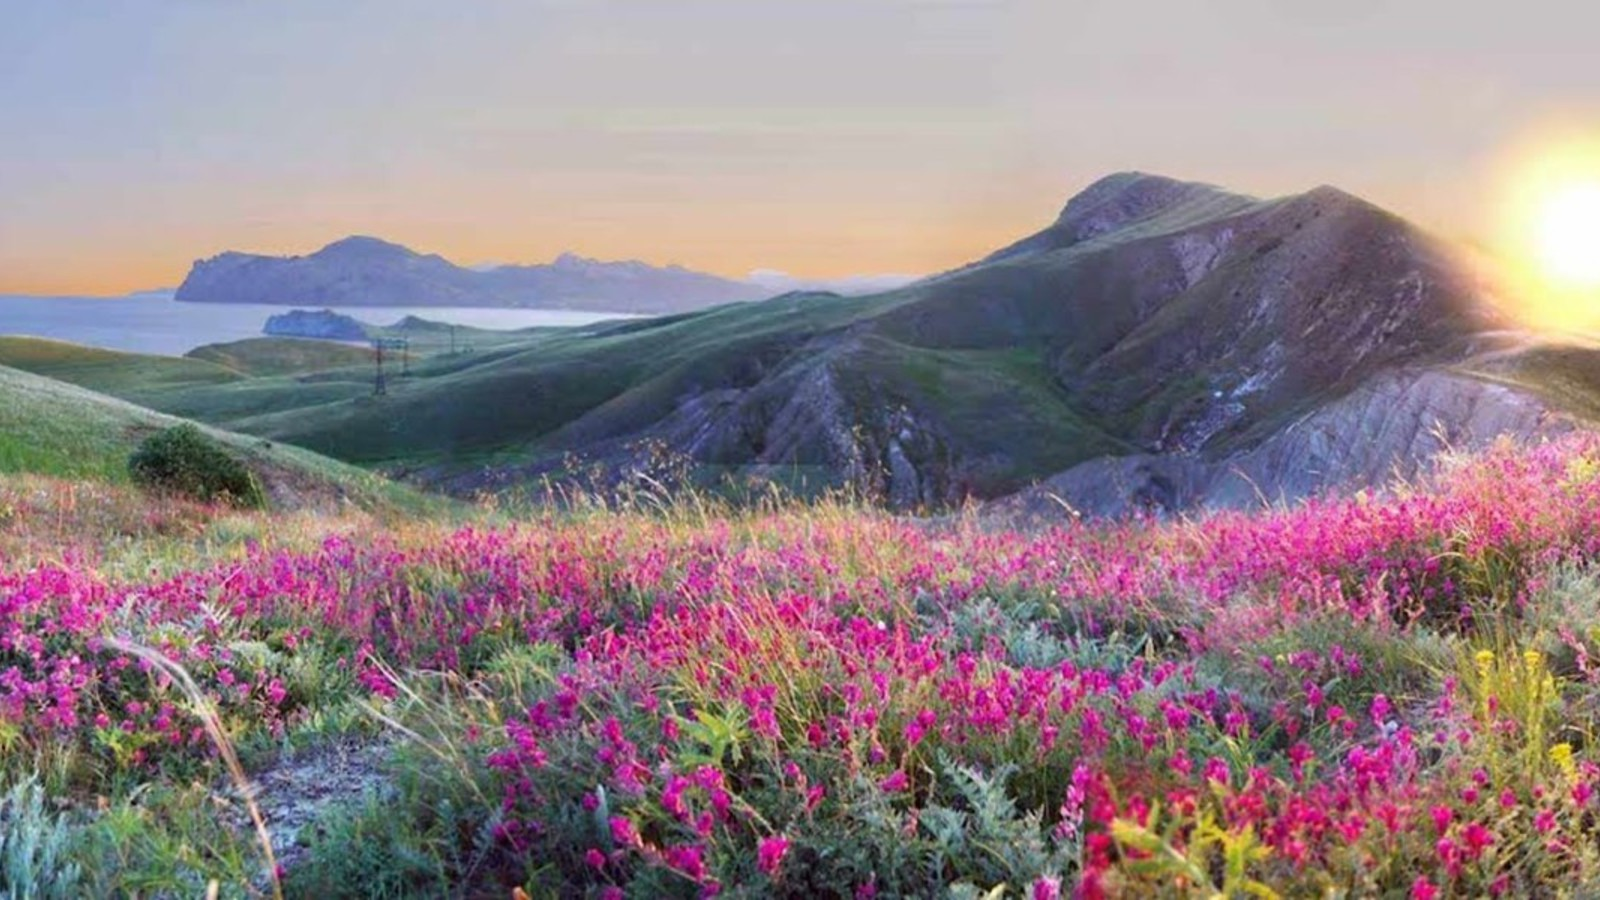 Best Iphone 5 Home Screen Wallpapers Landscapes Nature Flowers Yellow Pink Grass Hills